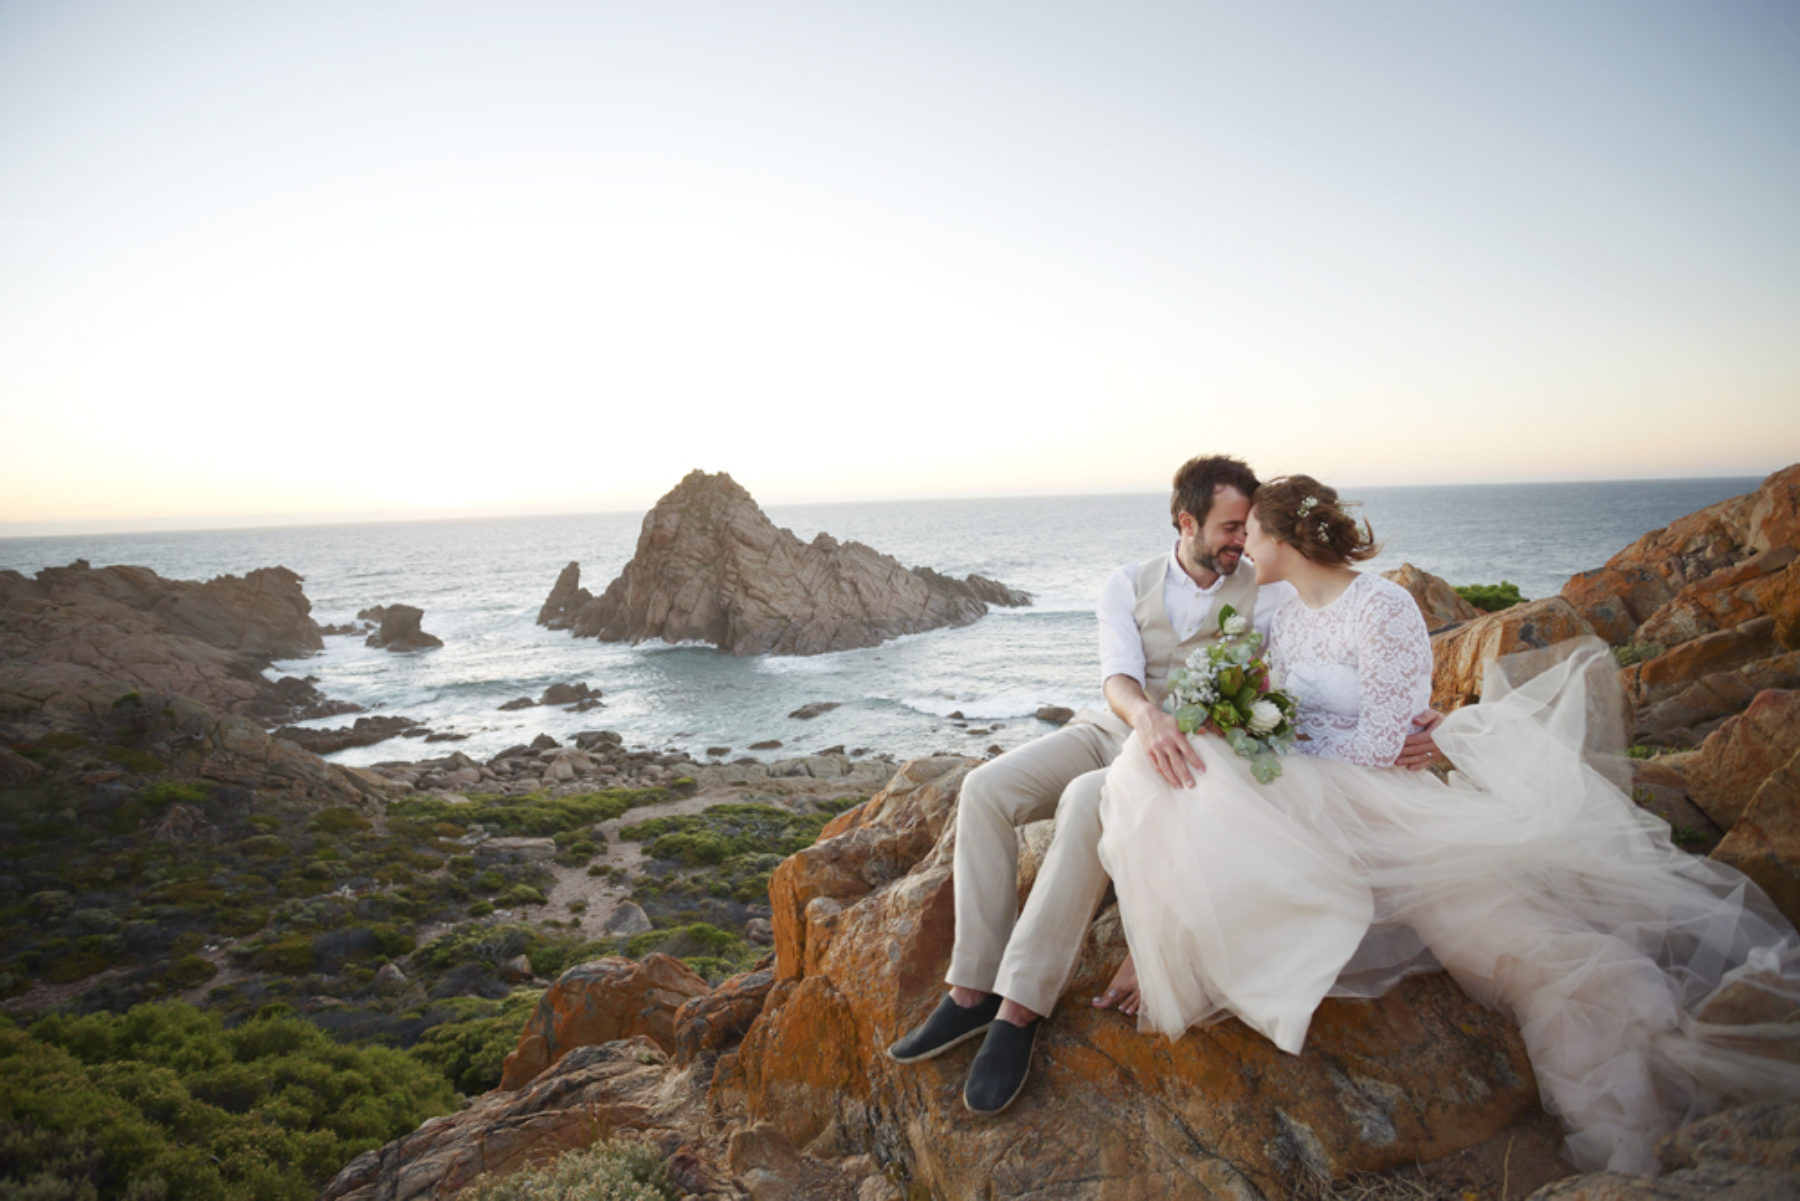 Anthea Auld - natural wedding photography Perth WA